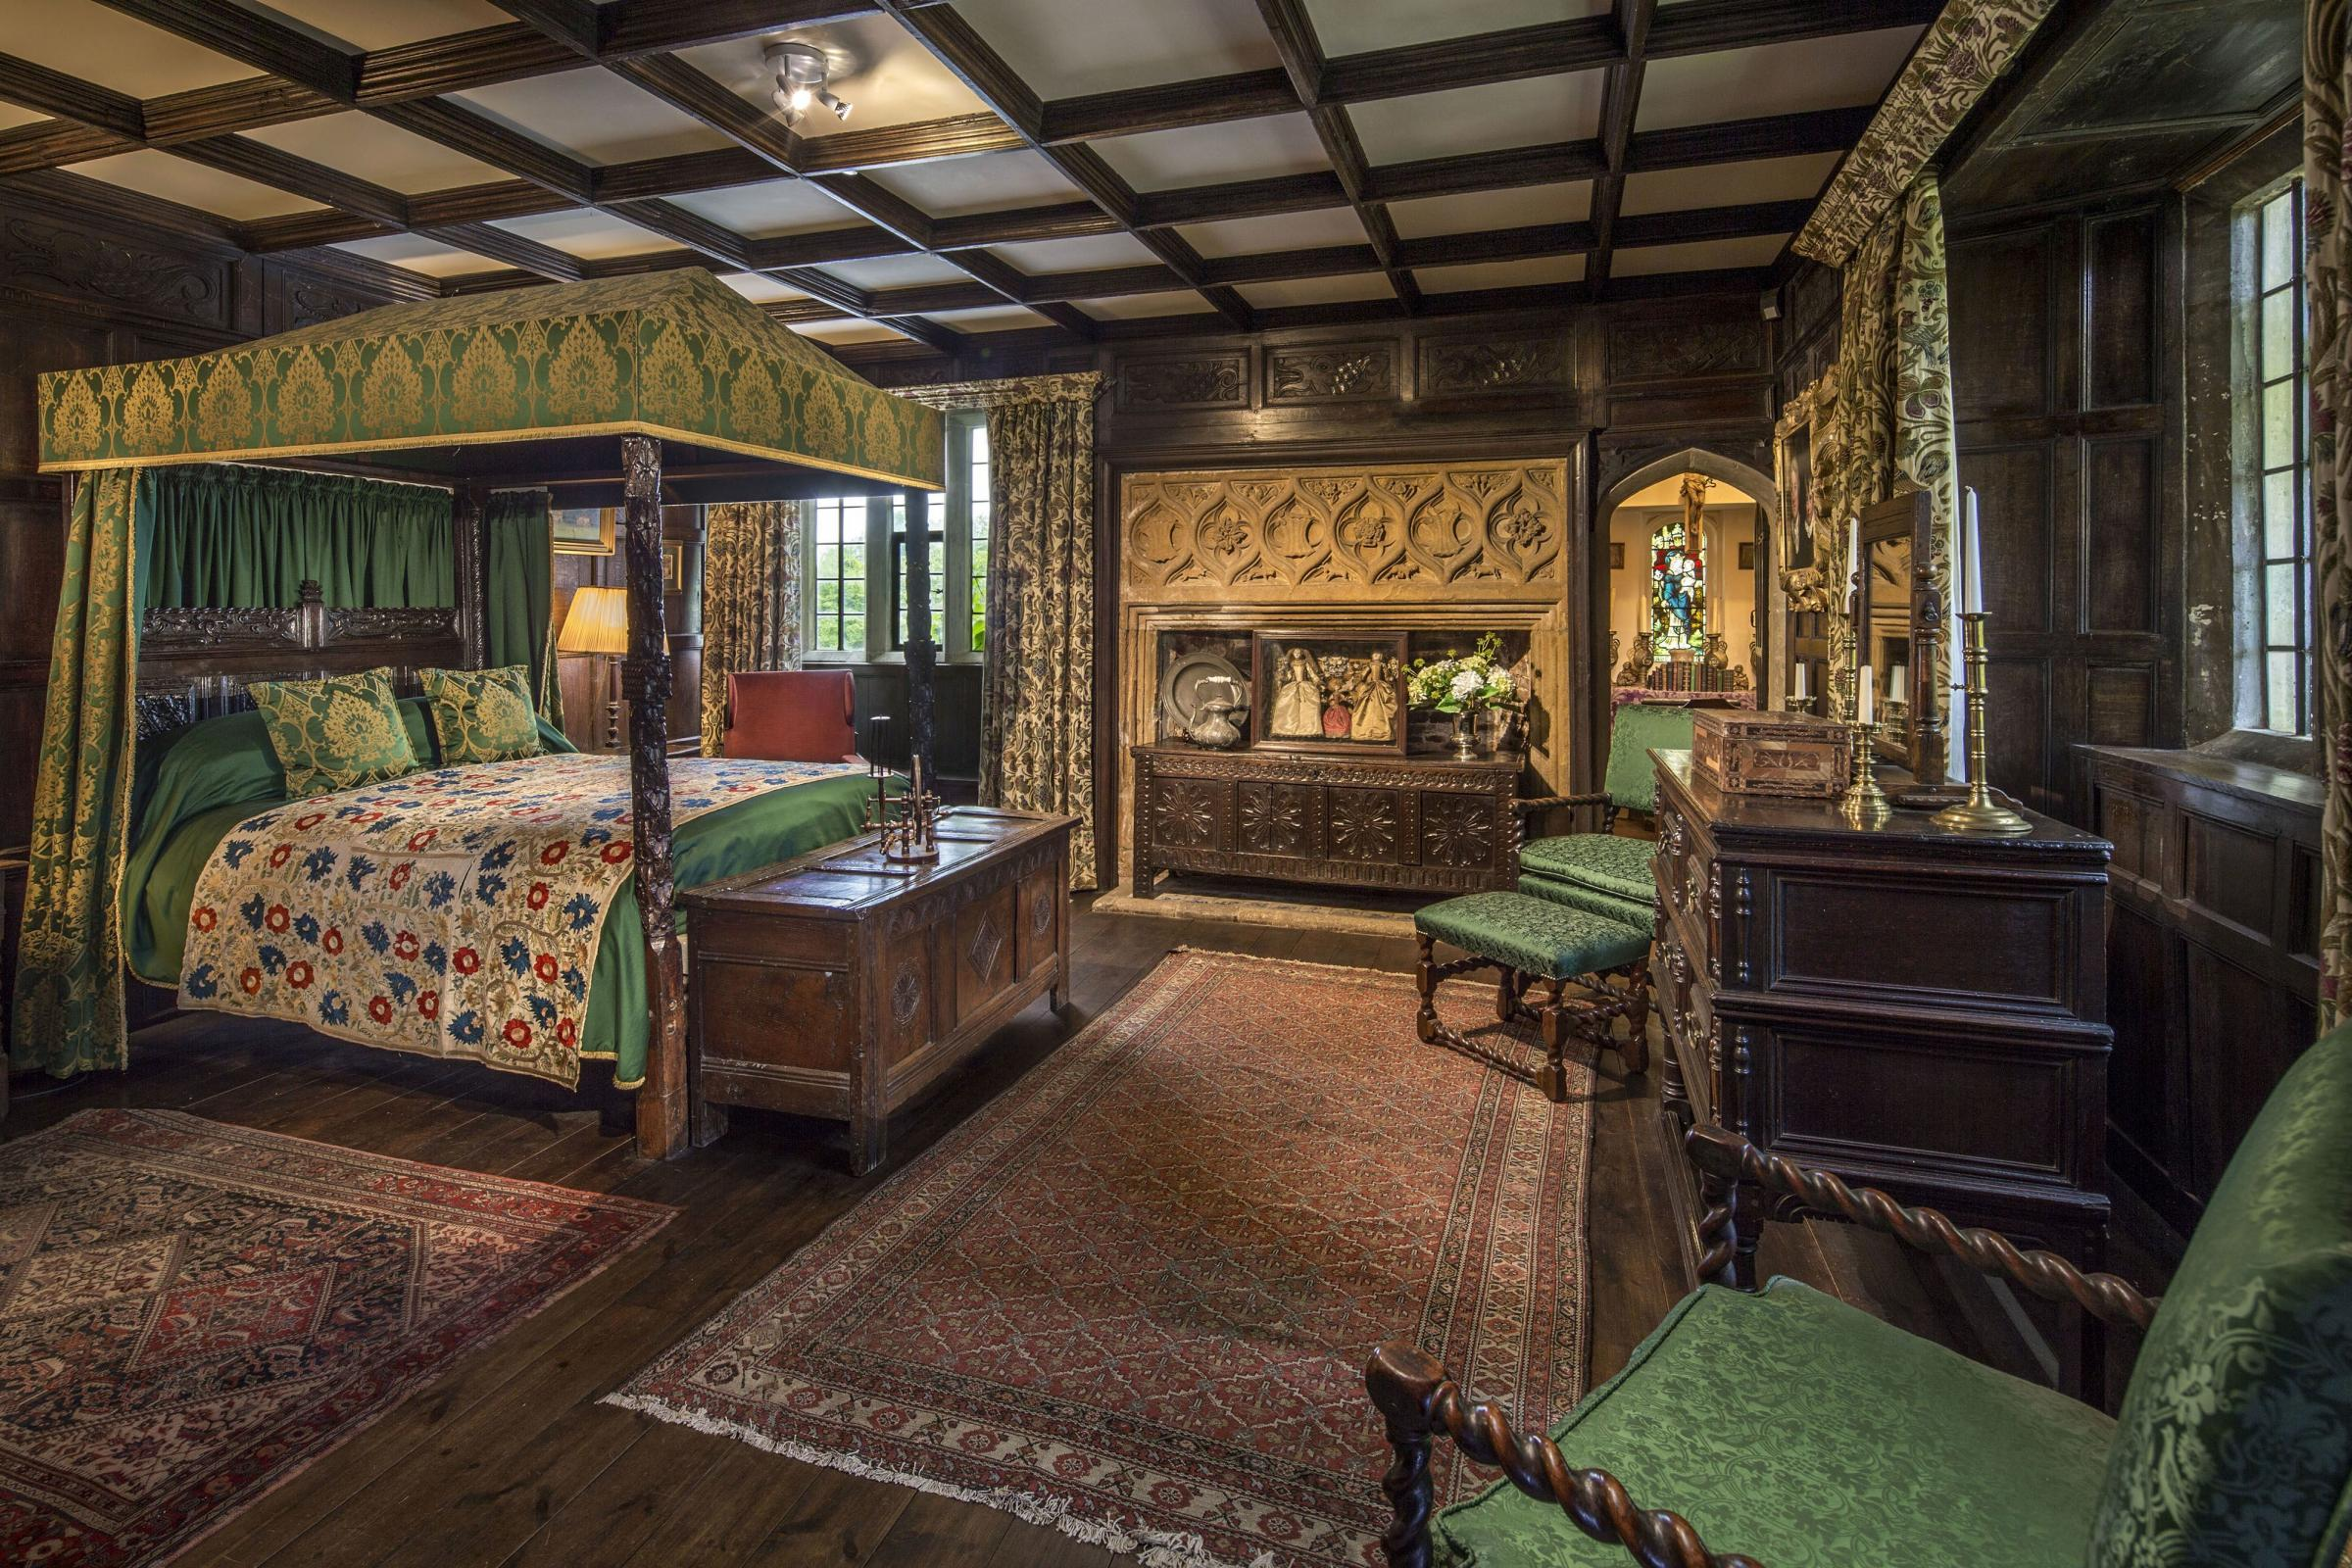 Manor House treasures fetch £1.5m (and a single stool sold for £33,800)